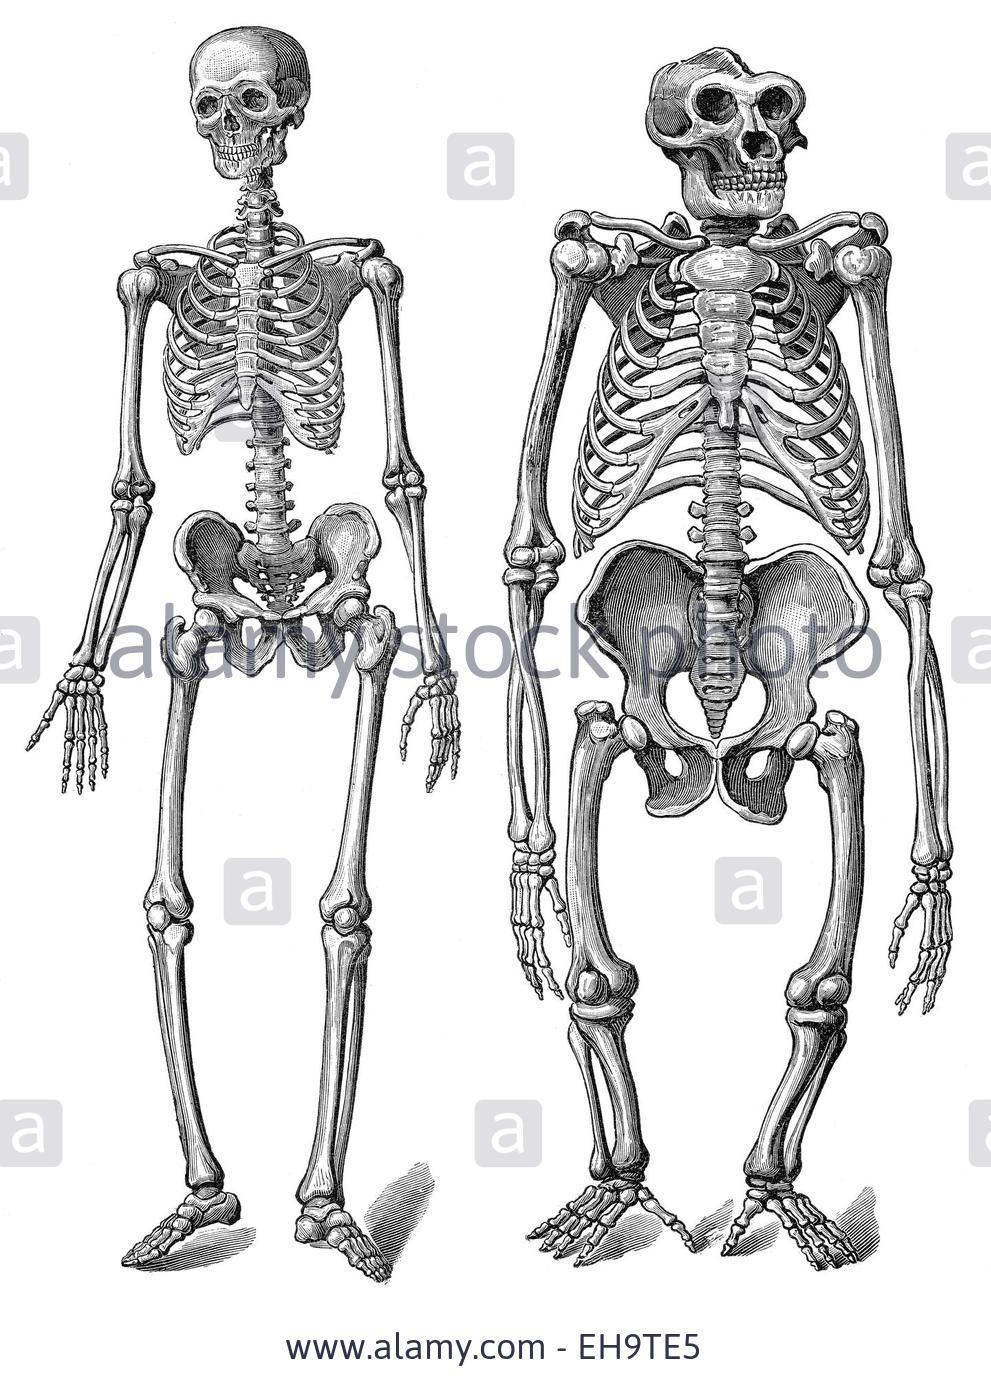 The human skeleton as compared to a gorilla skeleton, anatomy ...